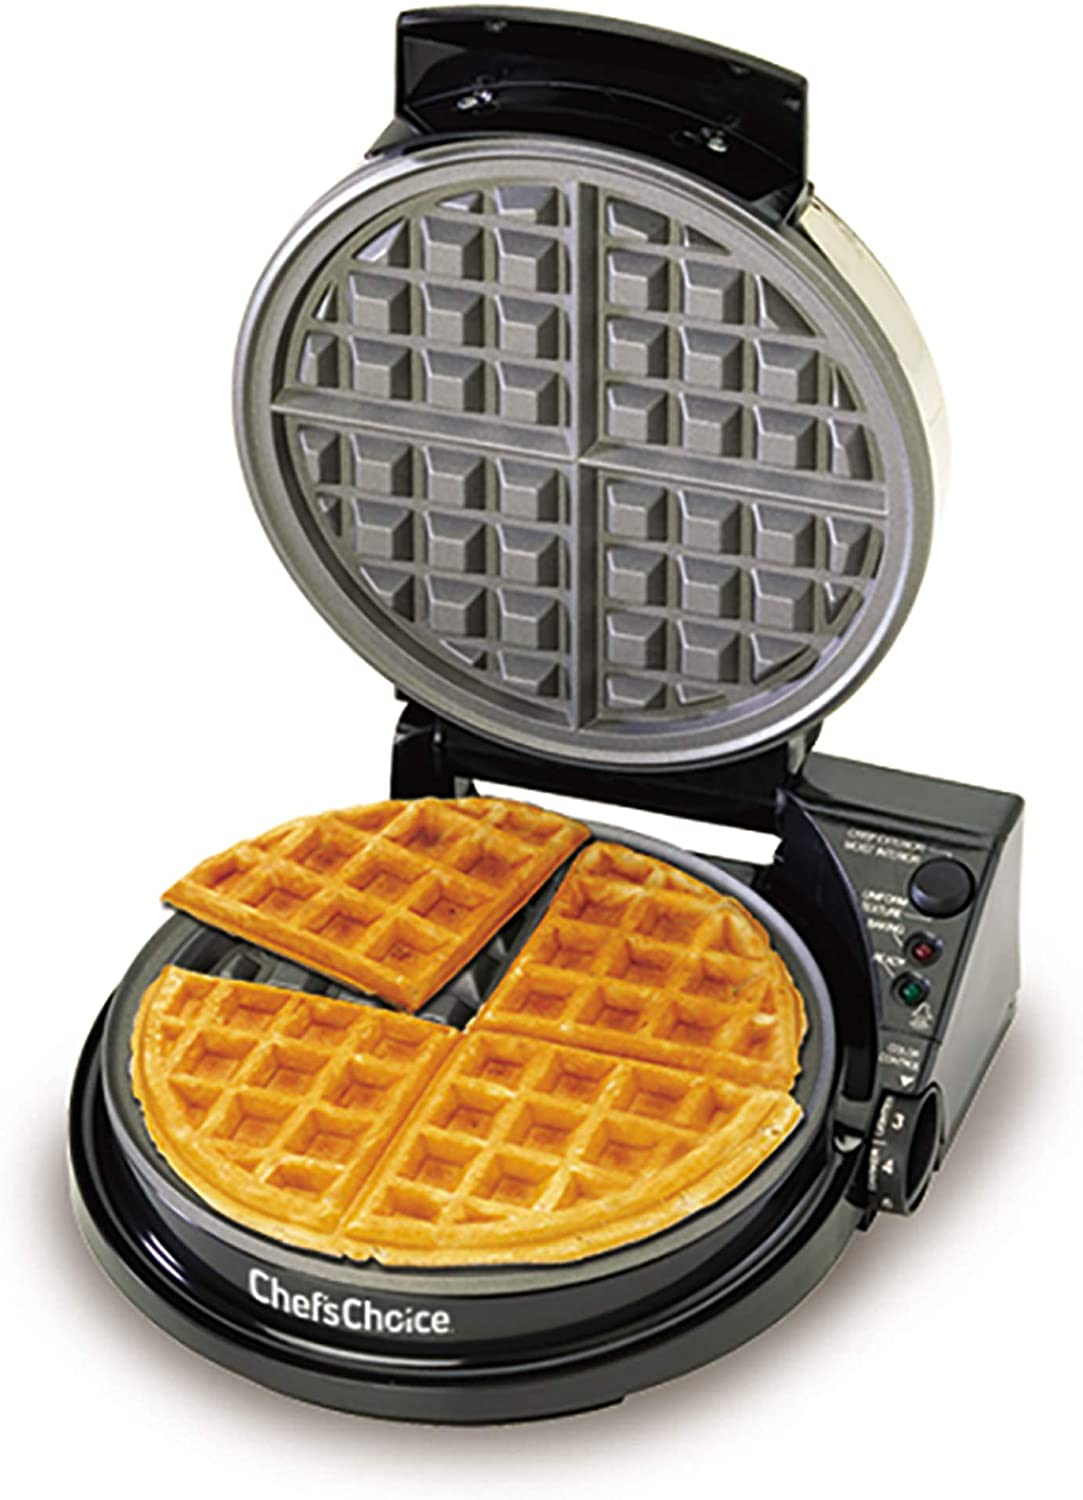 ChefChoice Waffle Maker